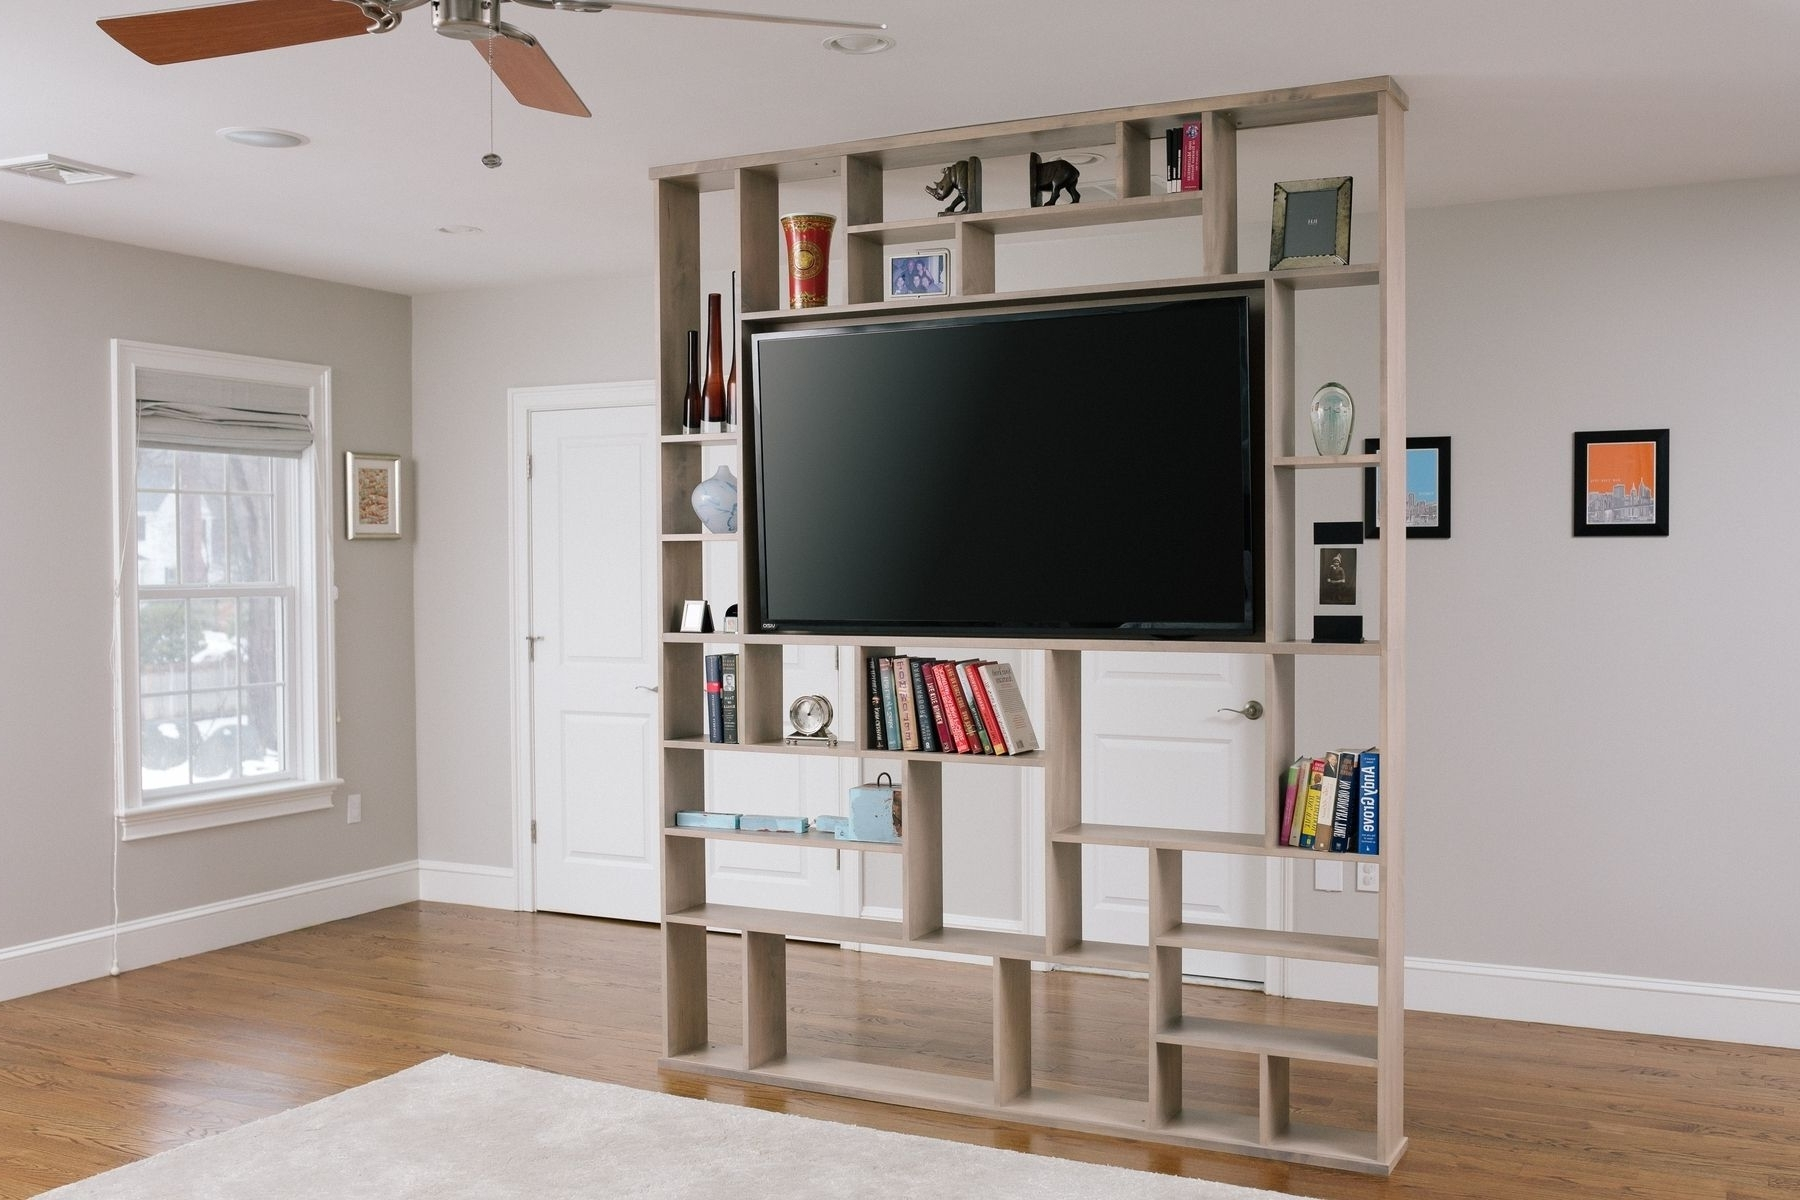 Best And Newest Hand Crafted Lexington Room Divider / Bookshelf / Tv Standcorl With Regard To Tv Bookshelves (View 5 of 15)